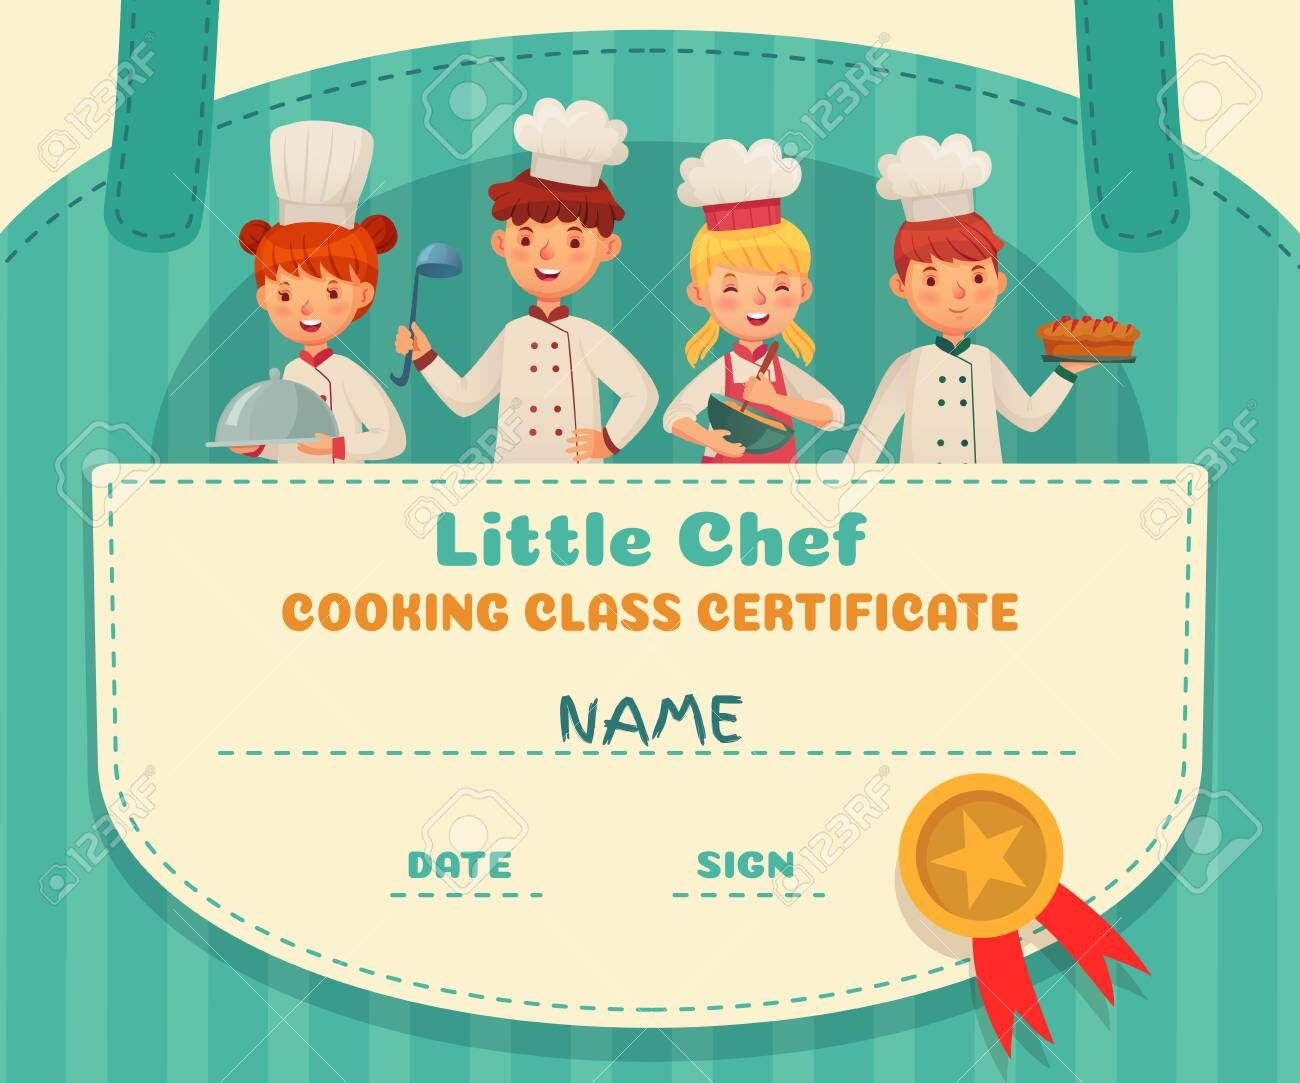 Little Chef Certificate Cooking Class Chefs Diploma Cooking Food School Lesson And Kids Cooks Frame Food Certi Little Chef Preschool Diploma Cooking Classes